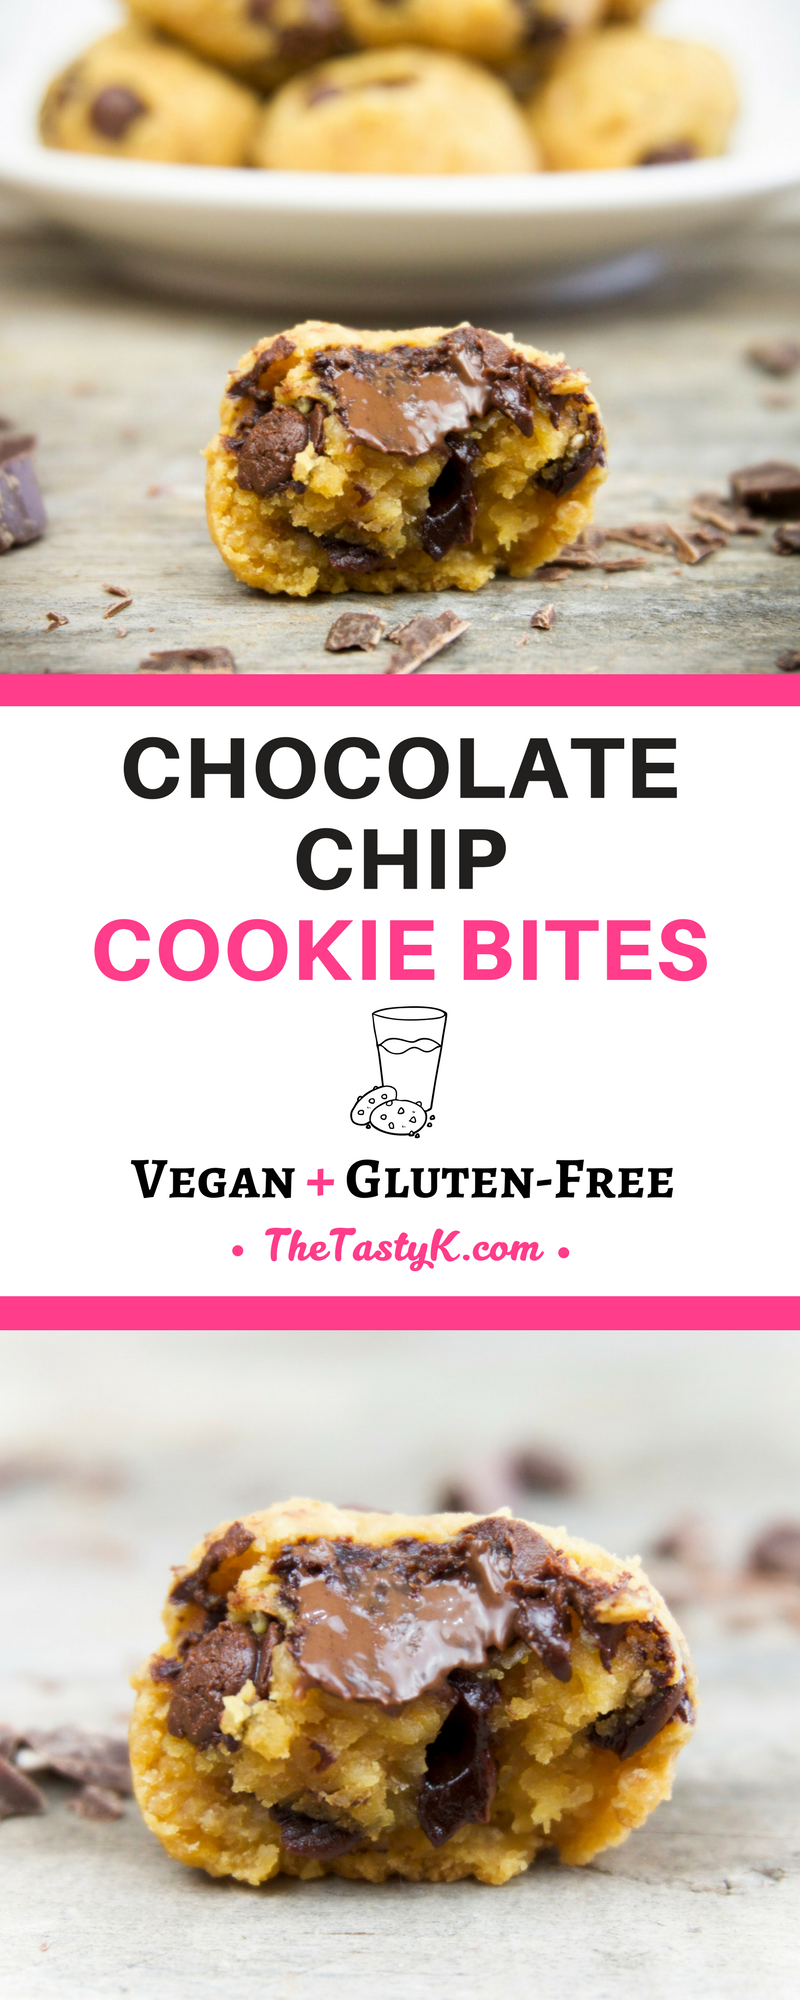 Chocolate Chip Cookie Bites The Tasty K Recipe Healthy Chocolate Chip Healthy Chocolate Vegan Cookies